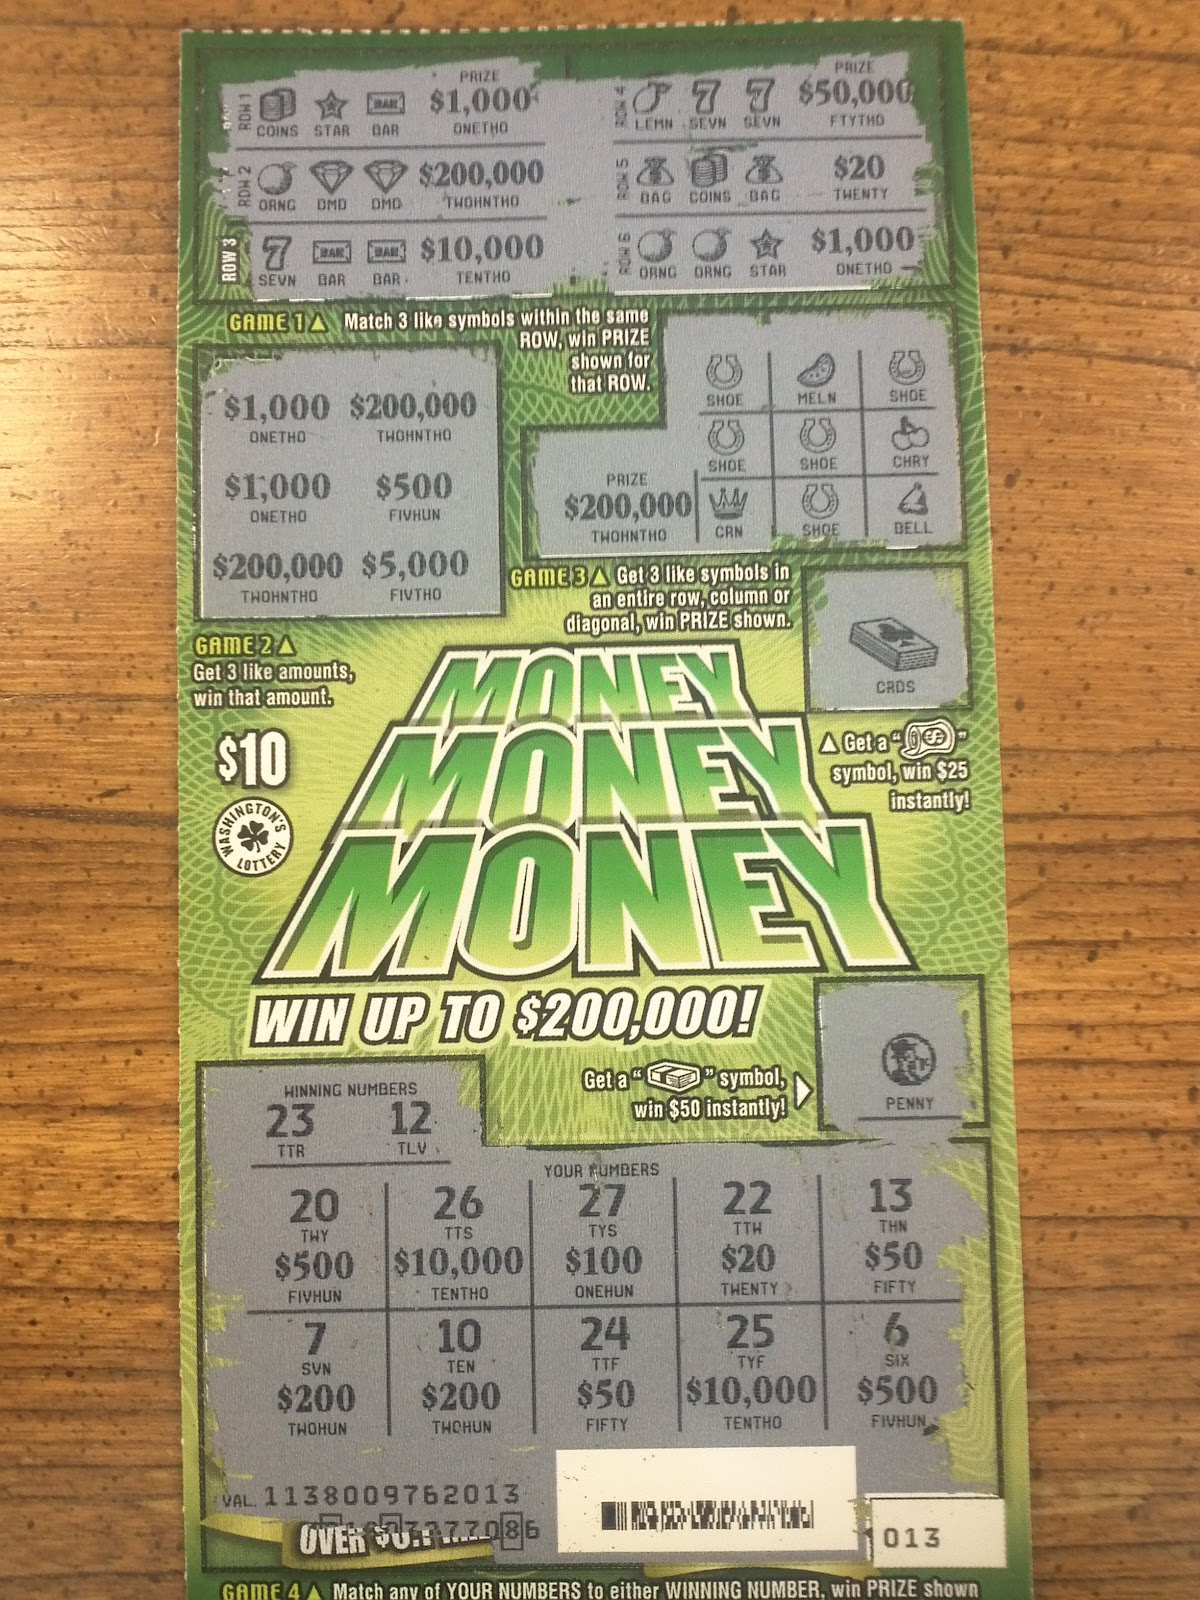 What scratch offs have the best odds